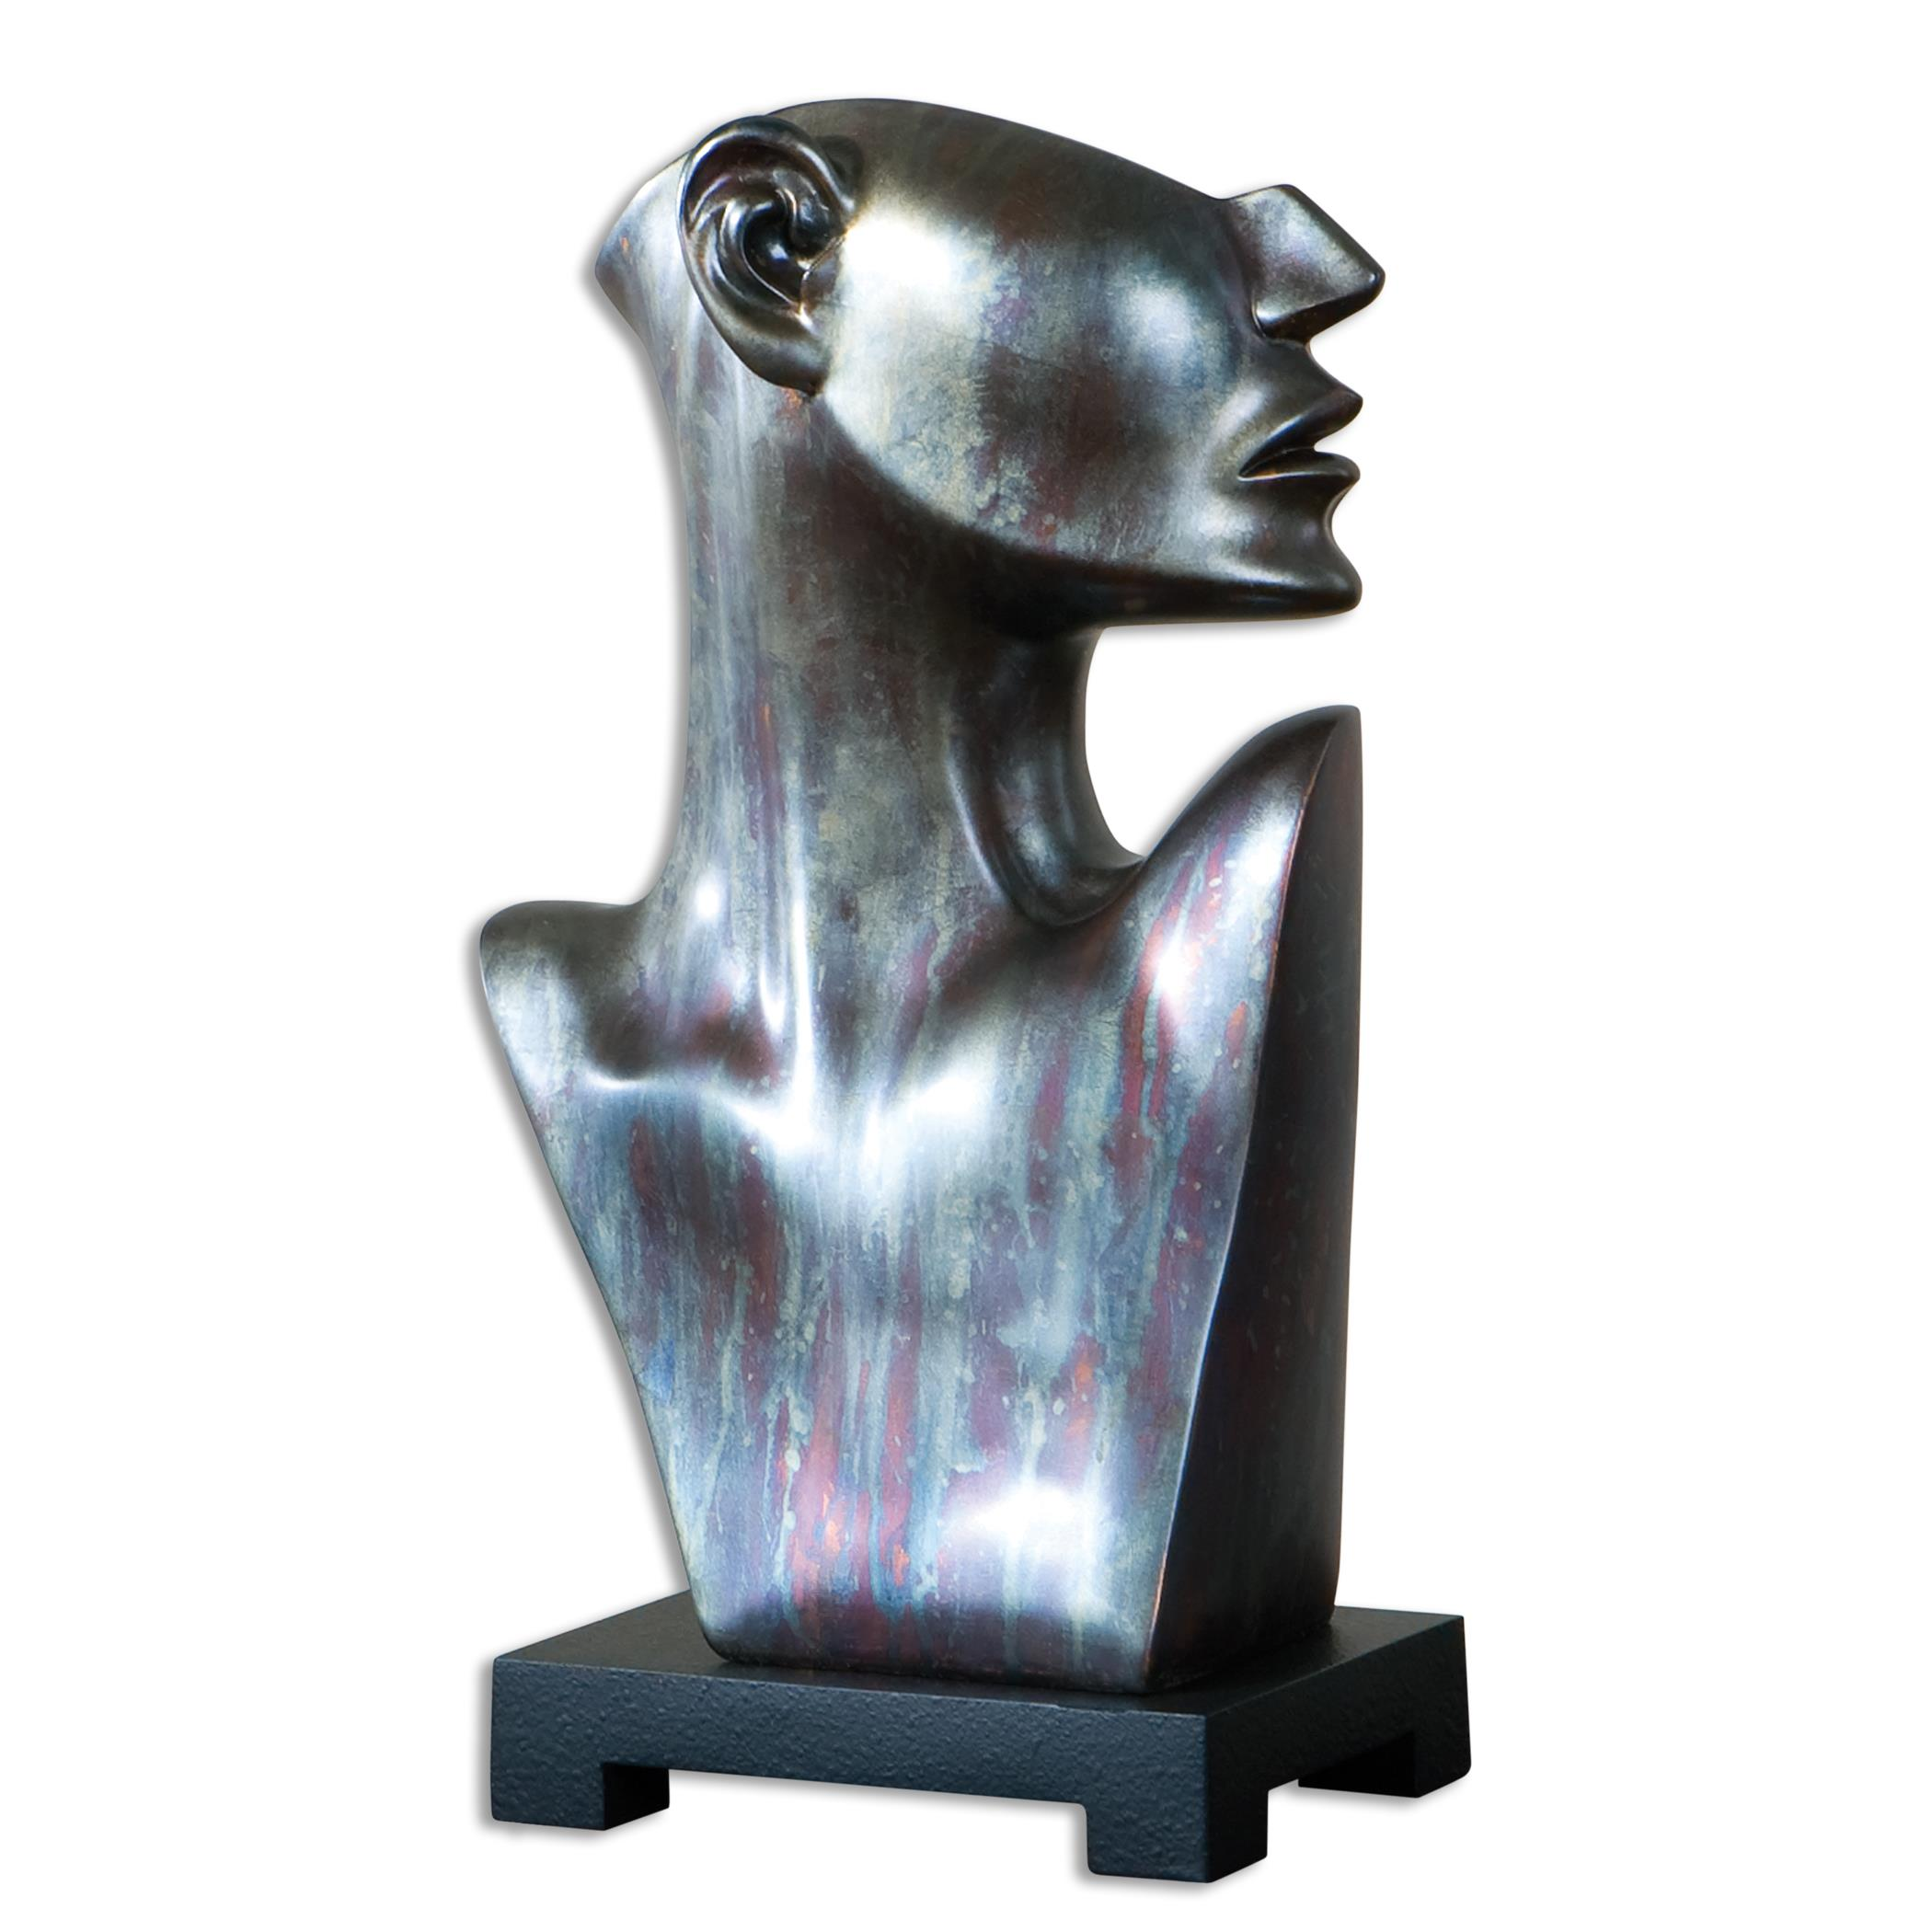 Uttermost Accessories My Good Side Bronze Sculpture - Item Number: 19933